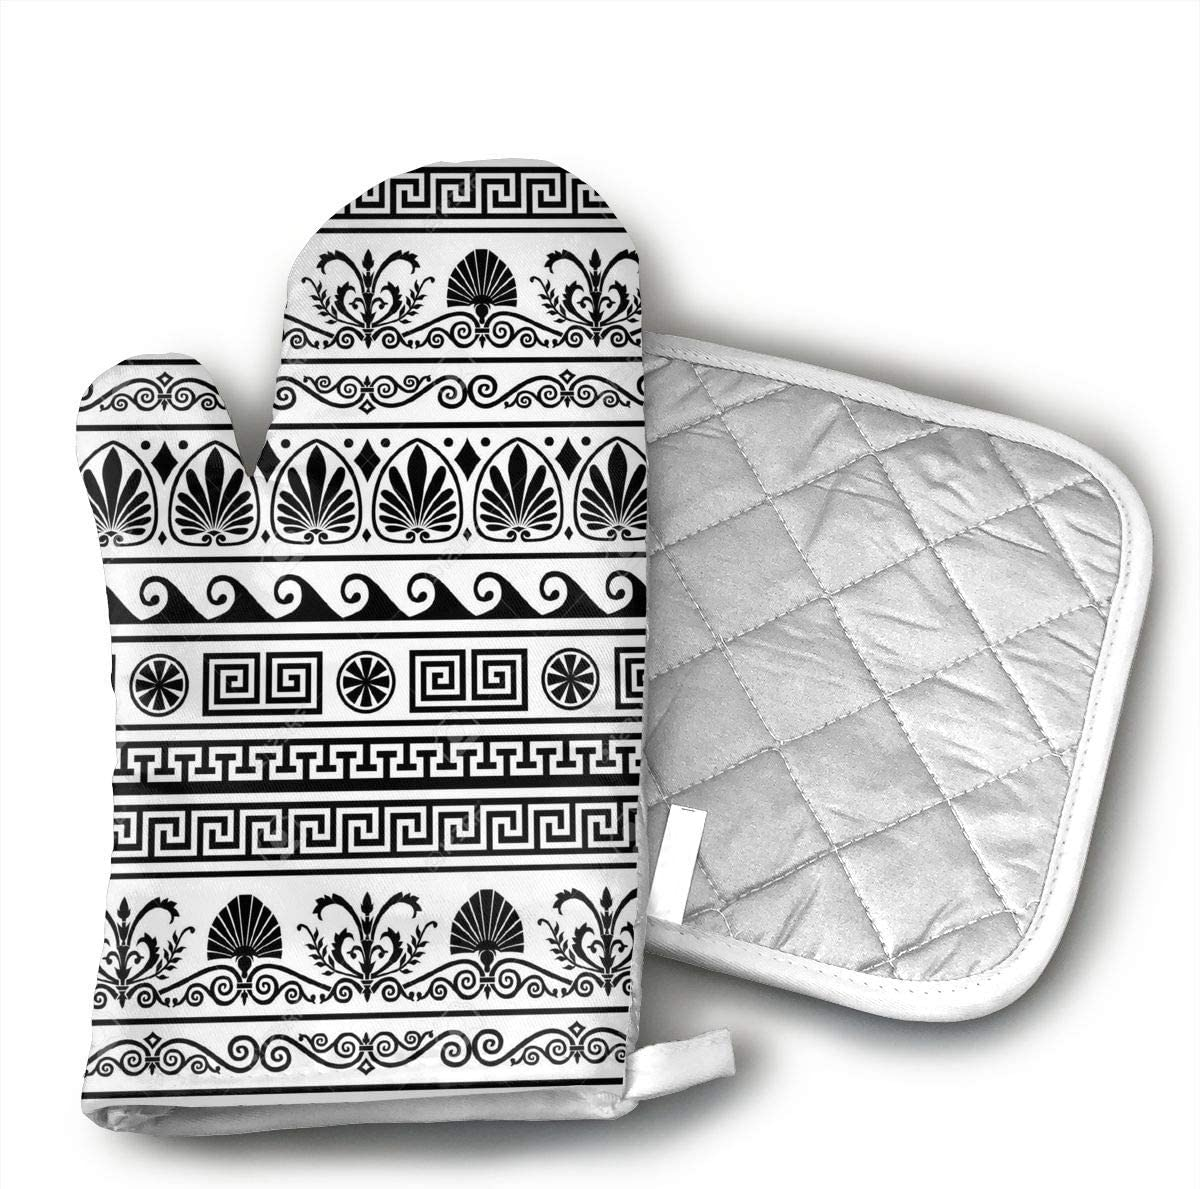 TUJABZA71 Retro Greek Pattern Background Cotton Heat Resistant Double Oven Mitts/Gloves Potholder Extra for Kitchen Cooking Baking